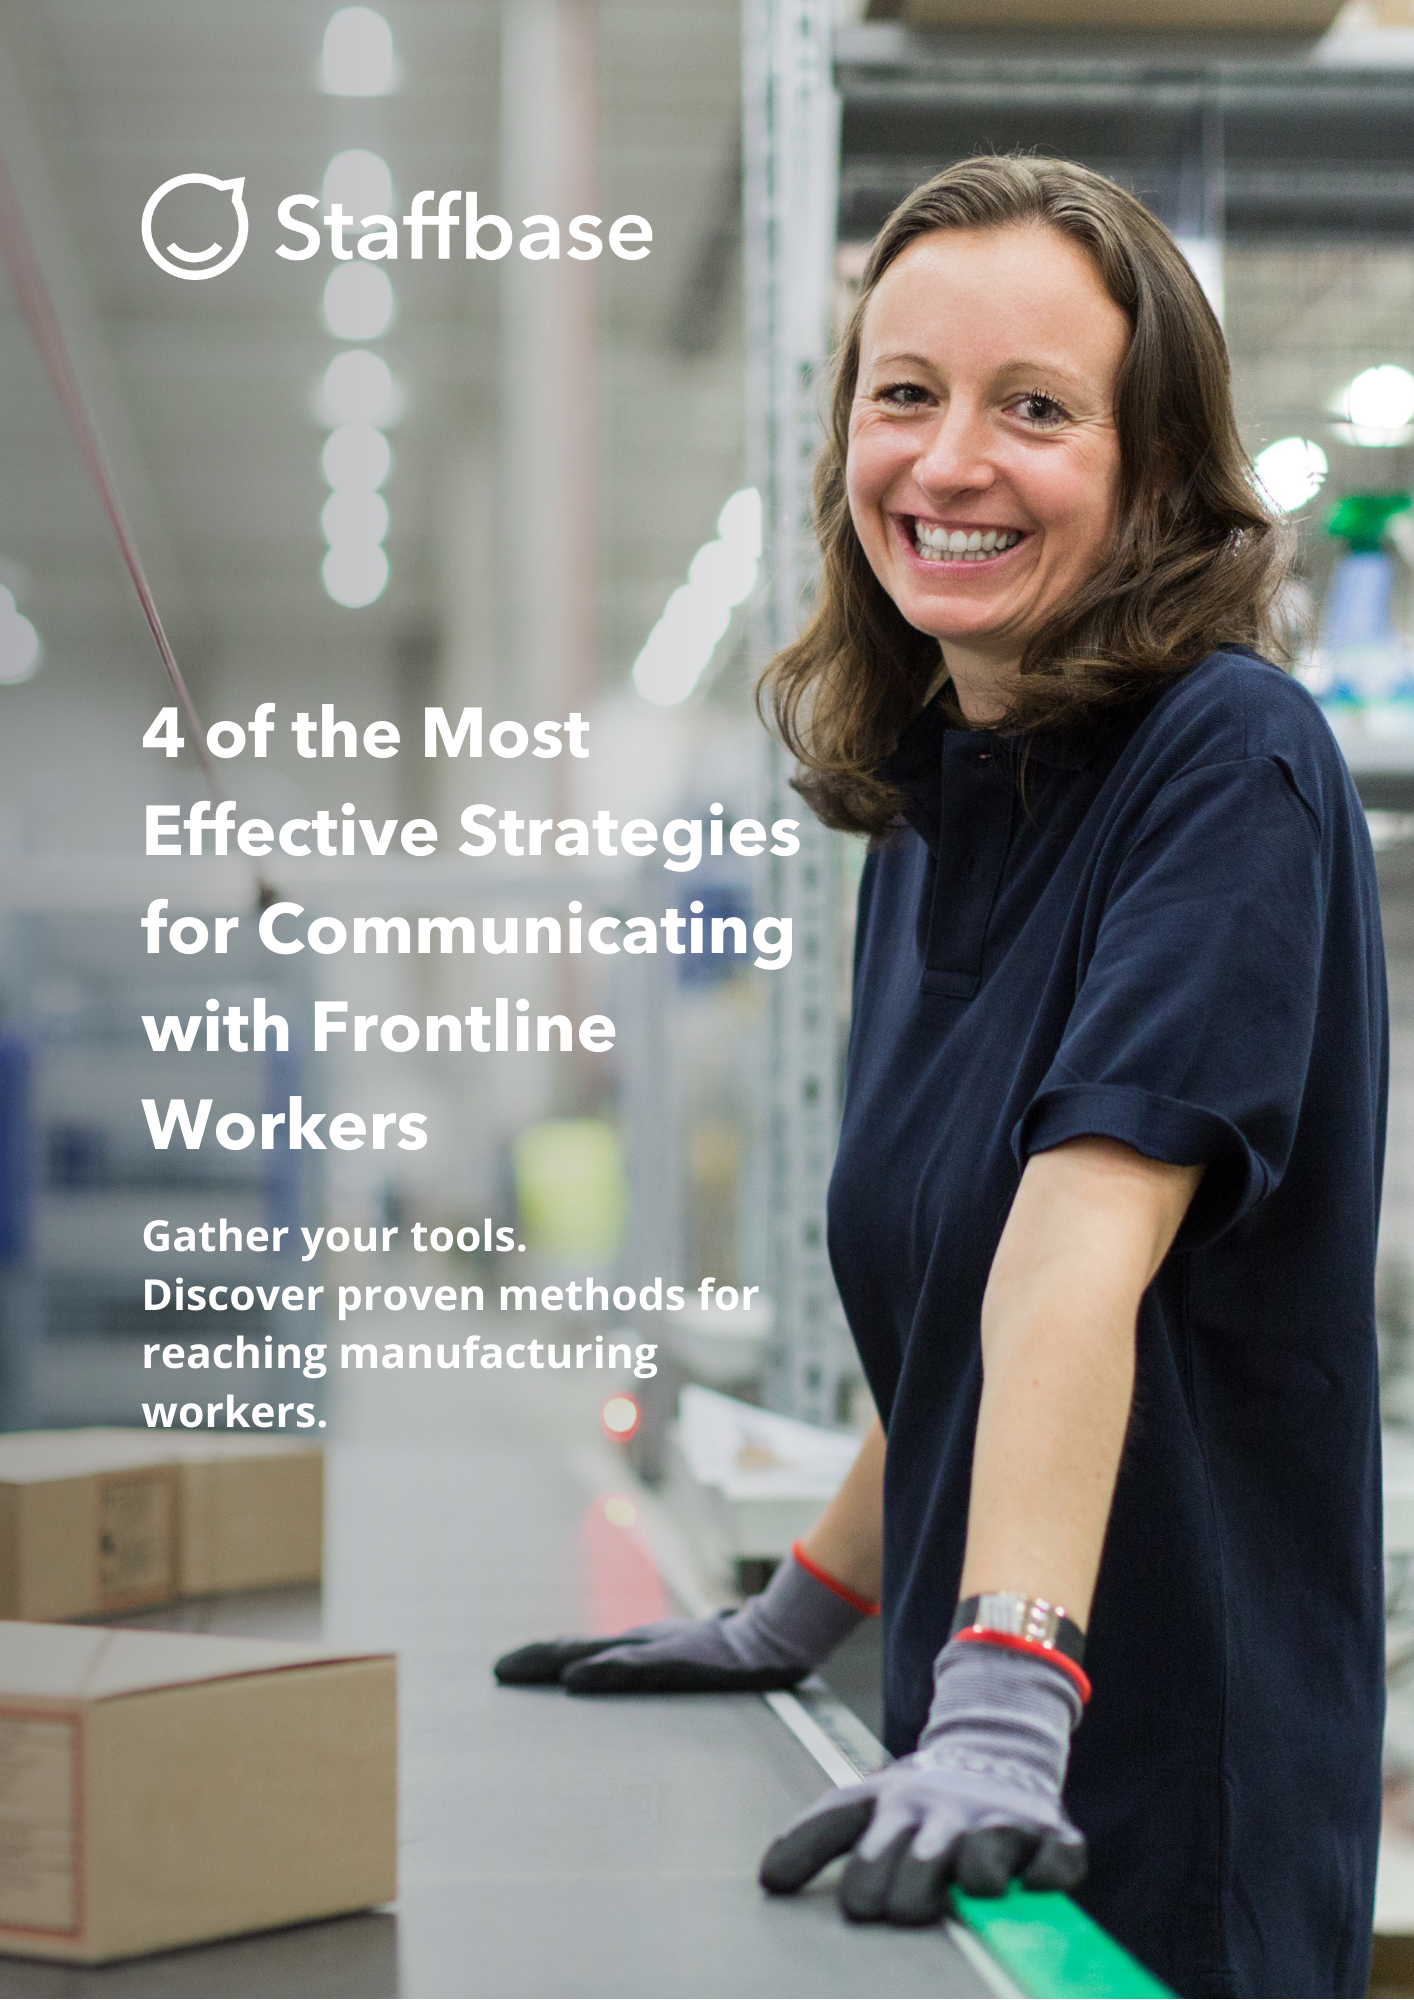 4 of the Most Effective Strategies for Communicating with Frontline Workers